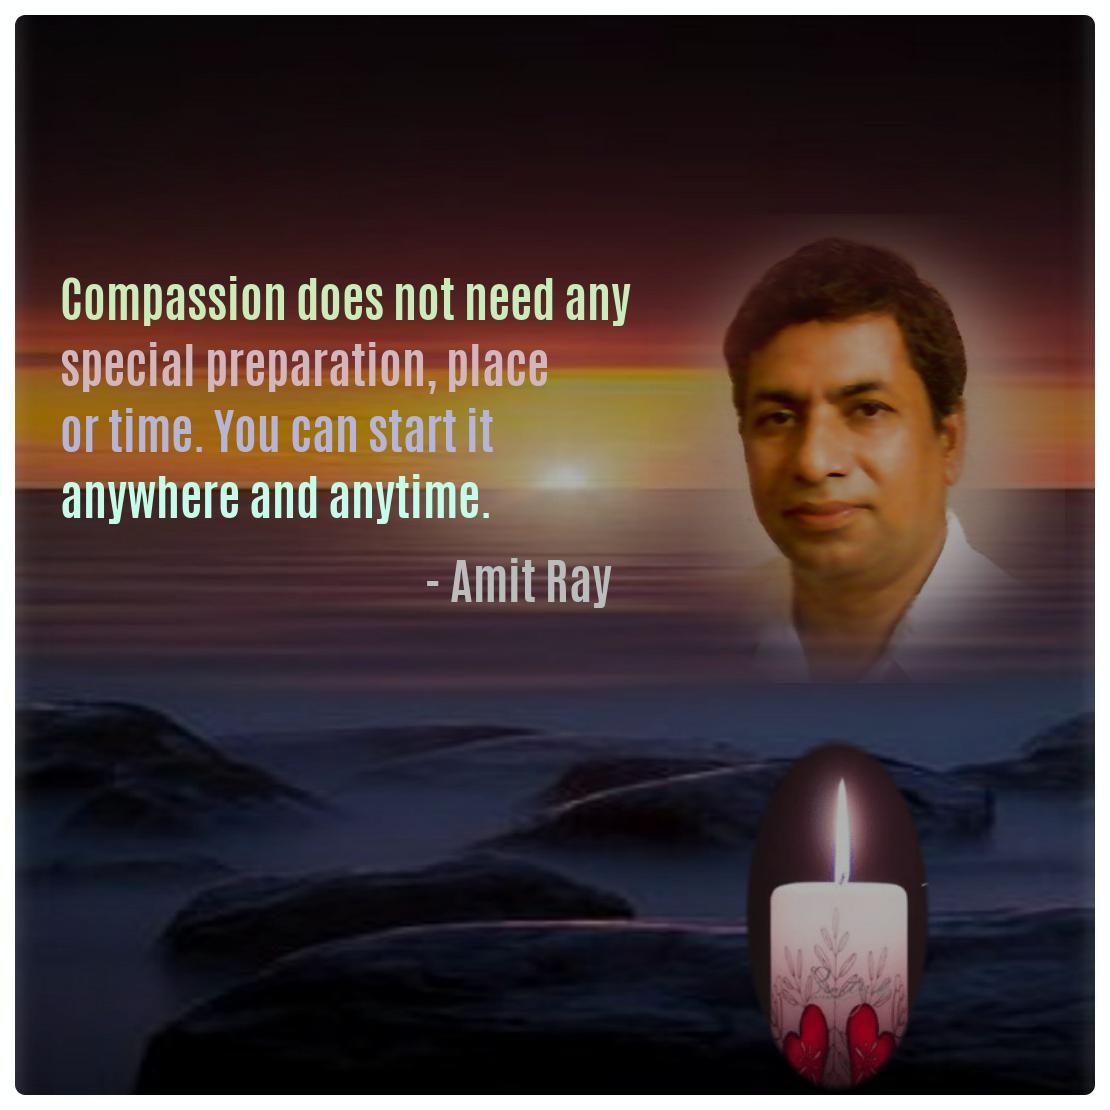 Compassion does not need any special preparation, place or time. You can start it anywhere and anytime. -- Amit Ray